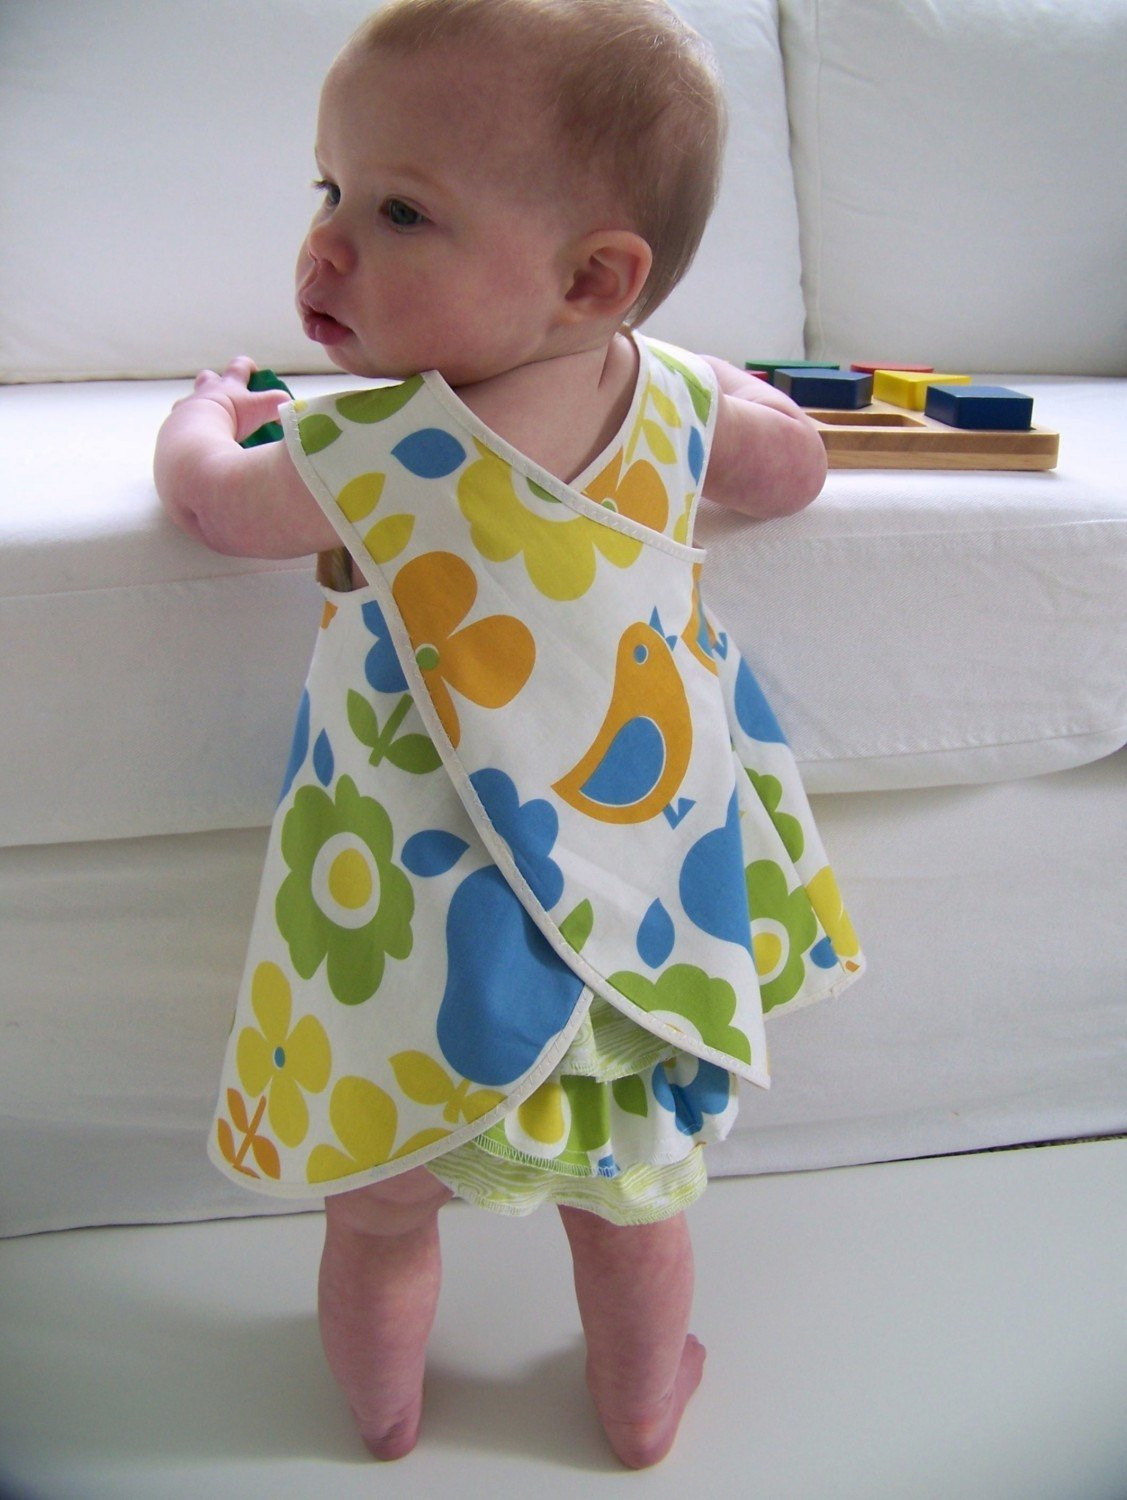 Unique Baby and toddler Pinafore Dress Sewing Pattern Pdf Tutorial Pinafore Dress toddler Of Brilliant 42 Images Pinafore Dress toddler